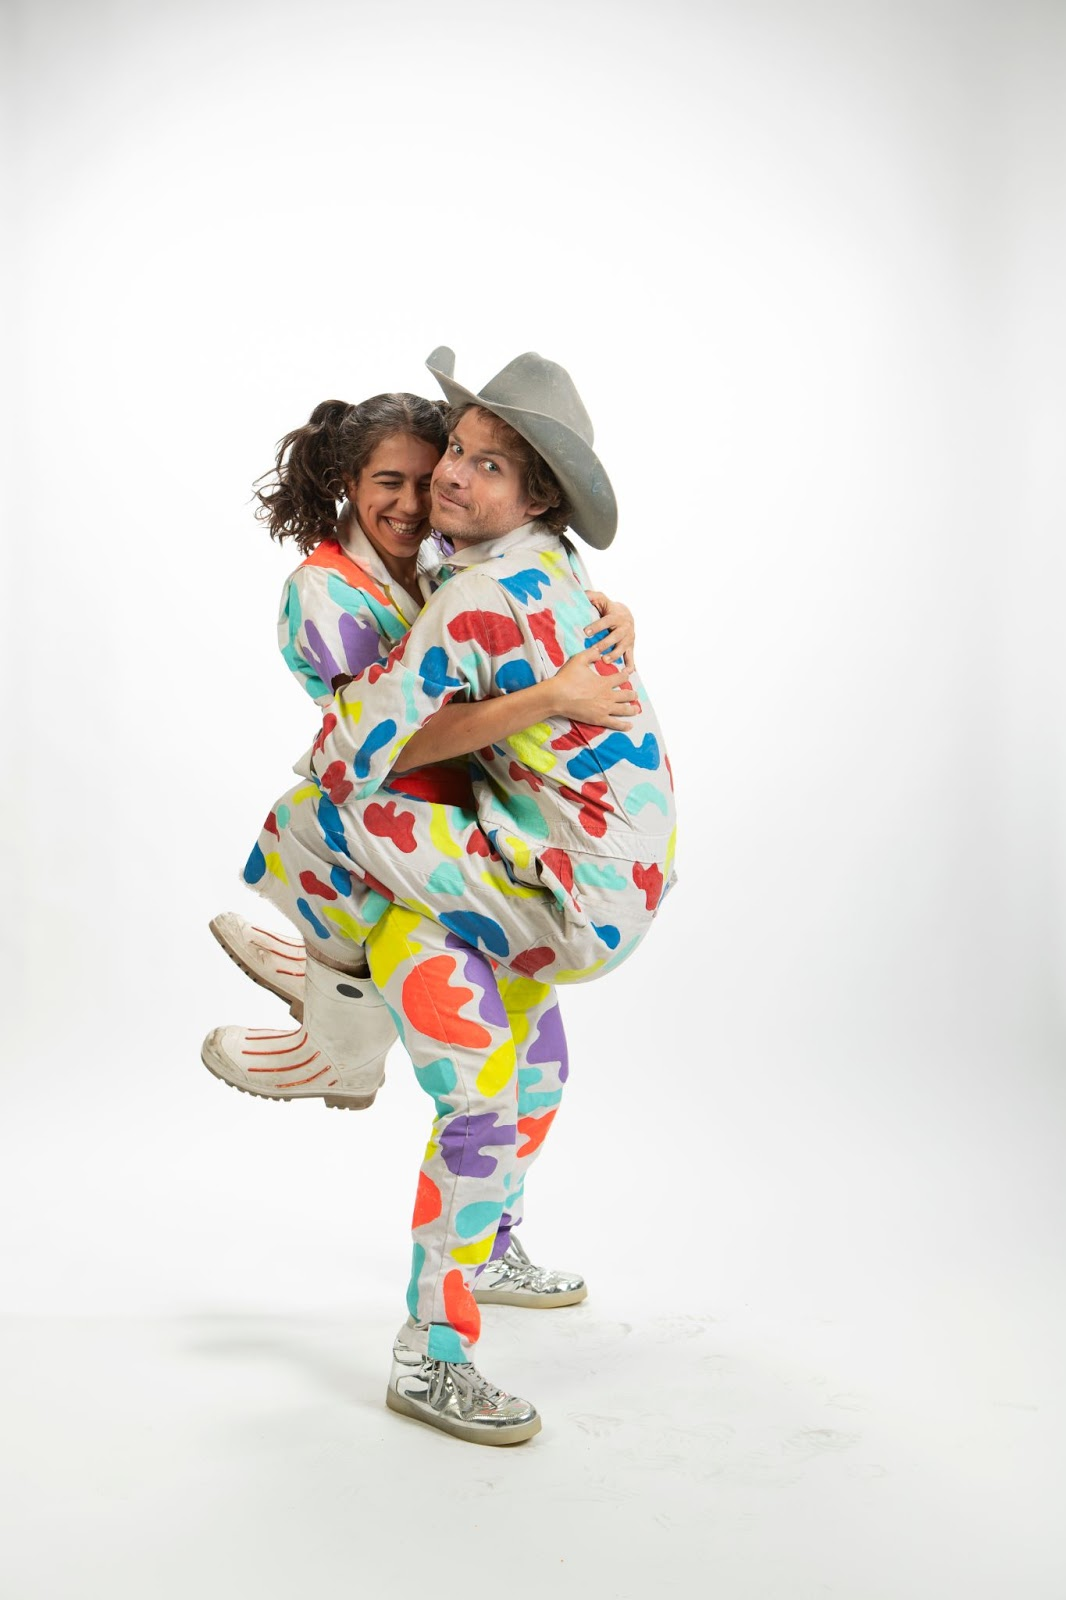 Man with legs wrapped around woman and looking at the camera. Both dressed in polka dot outfits